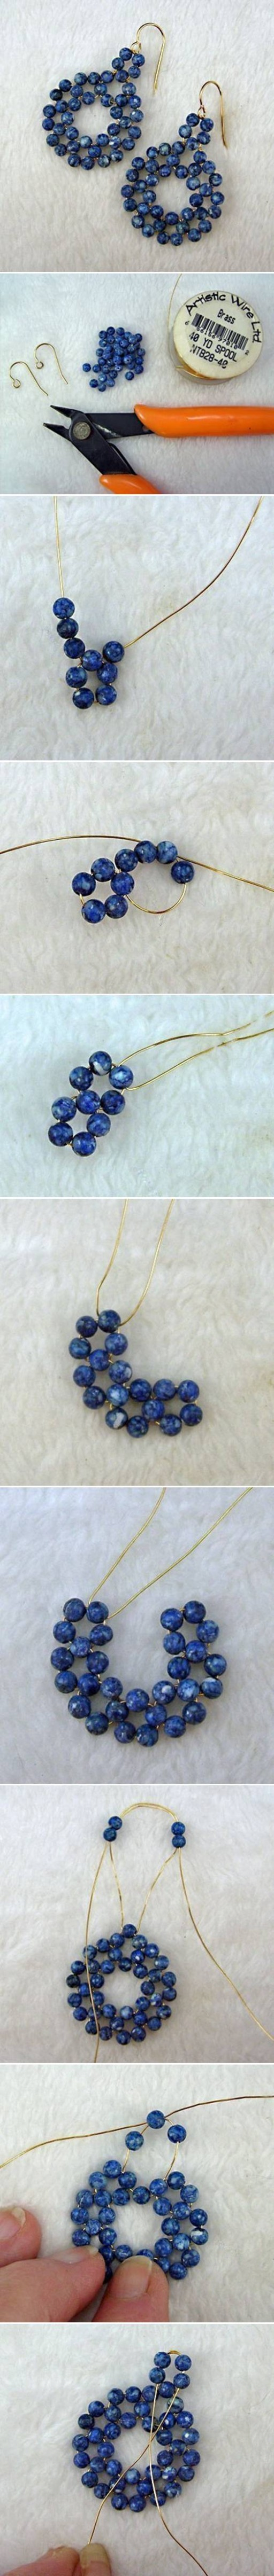 How To Make gold wire Beads or pearl jewelry Earrings step by step DIY tutorial instructions